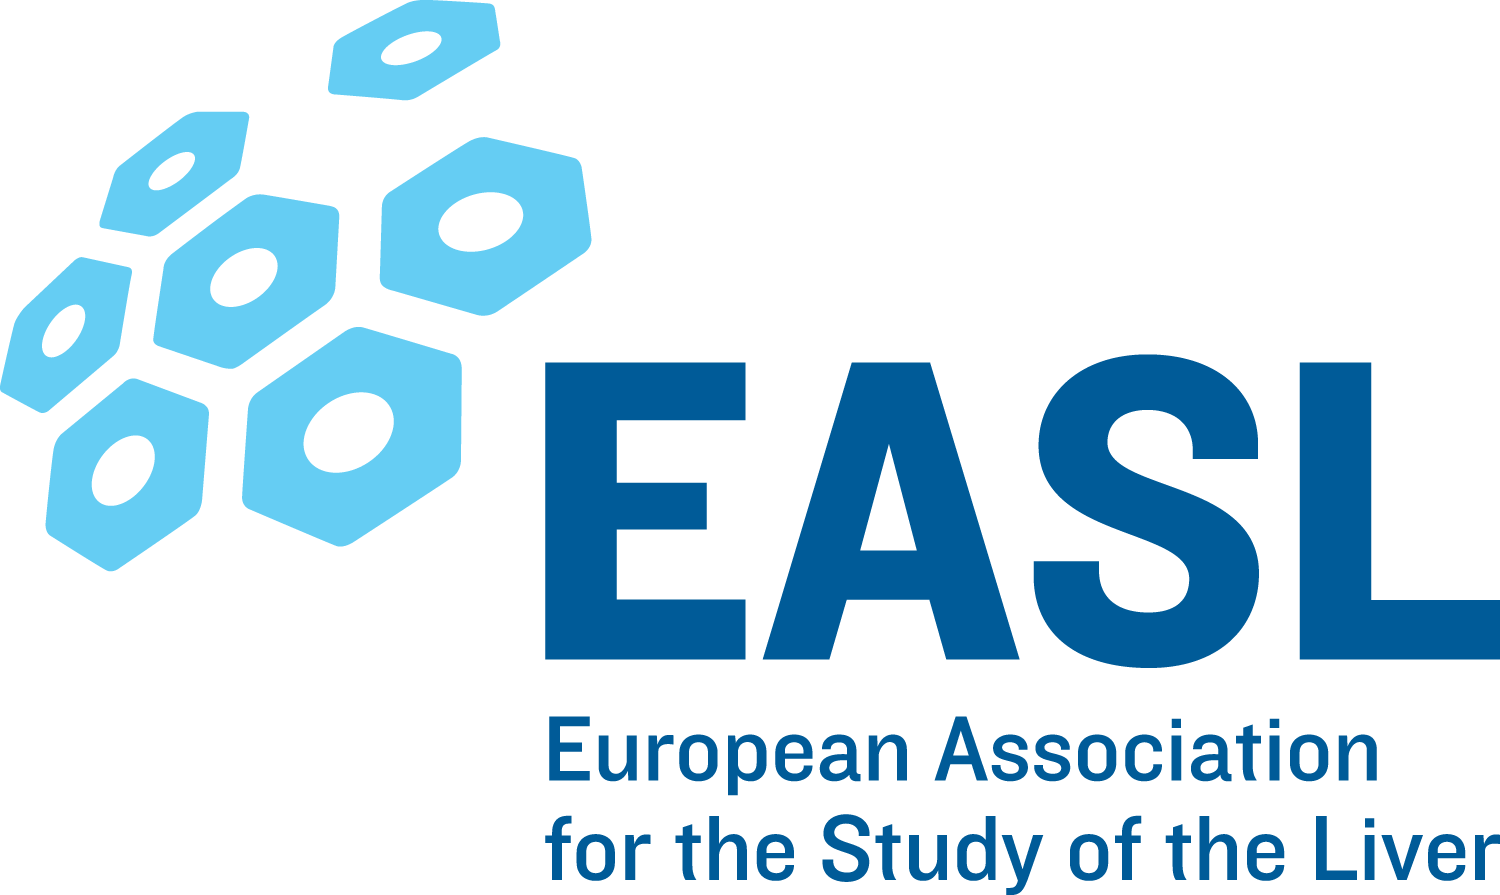 ILC 2020 - International Liver Congress™ of The European Association for the Study of the Liver